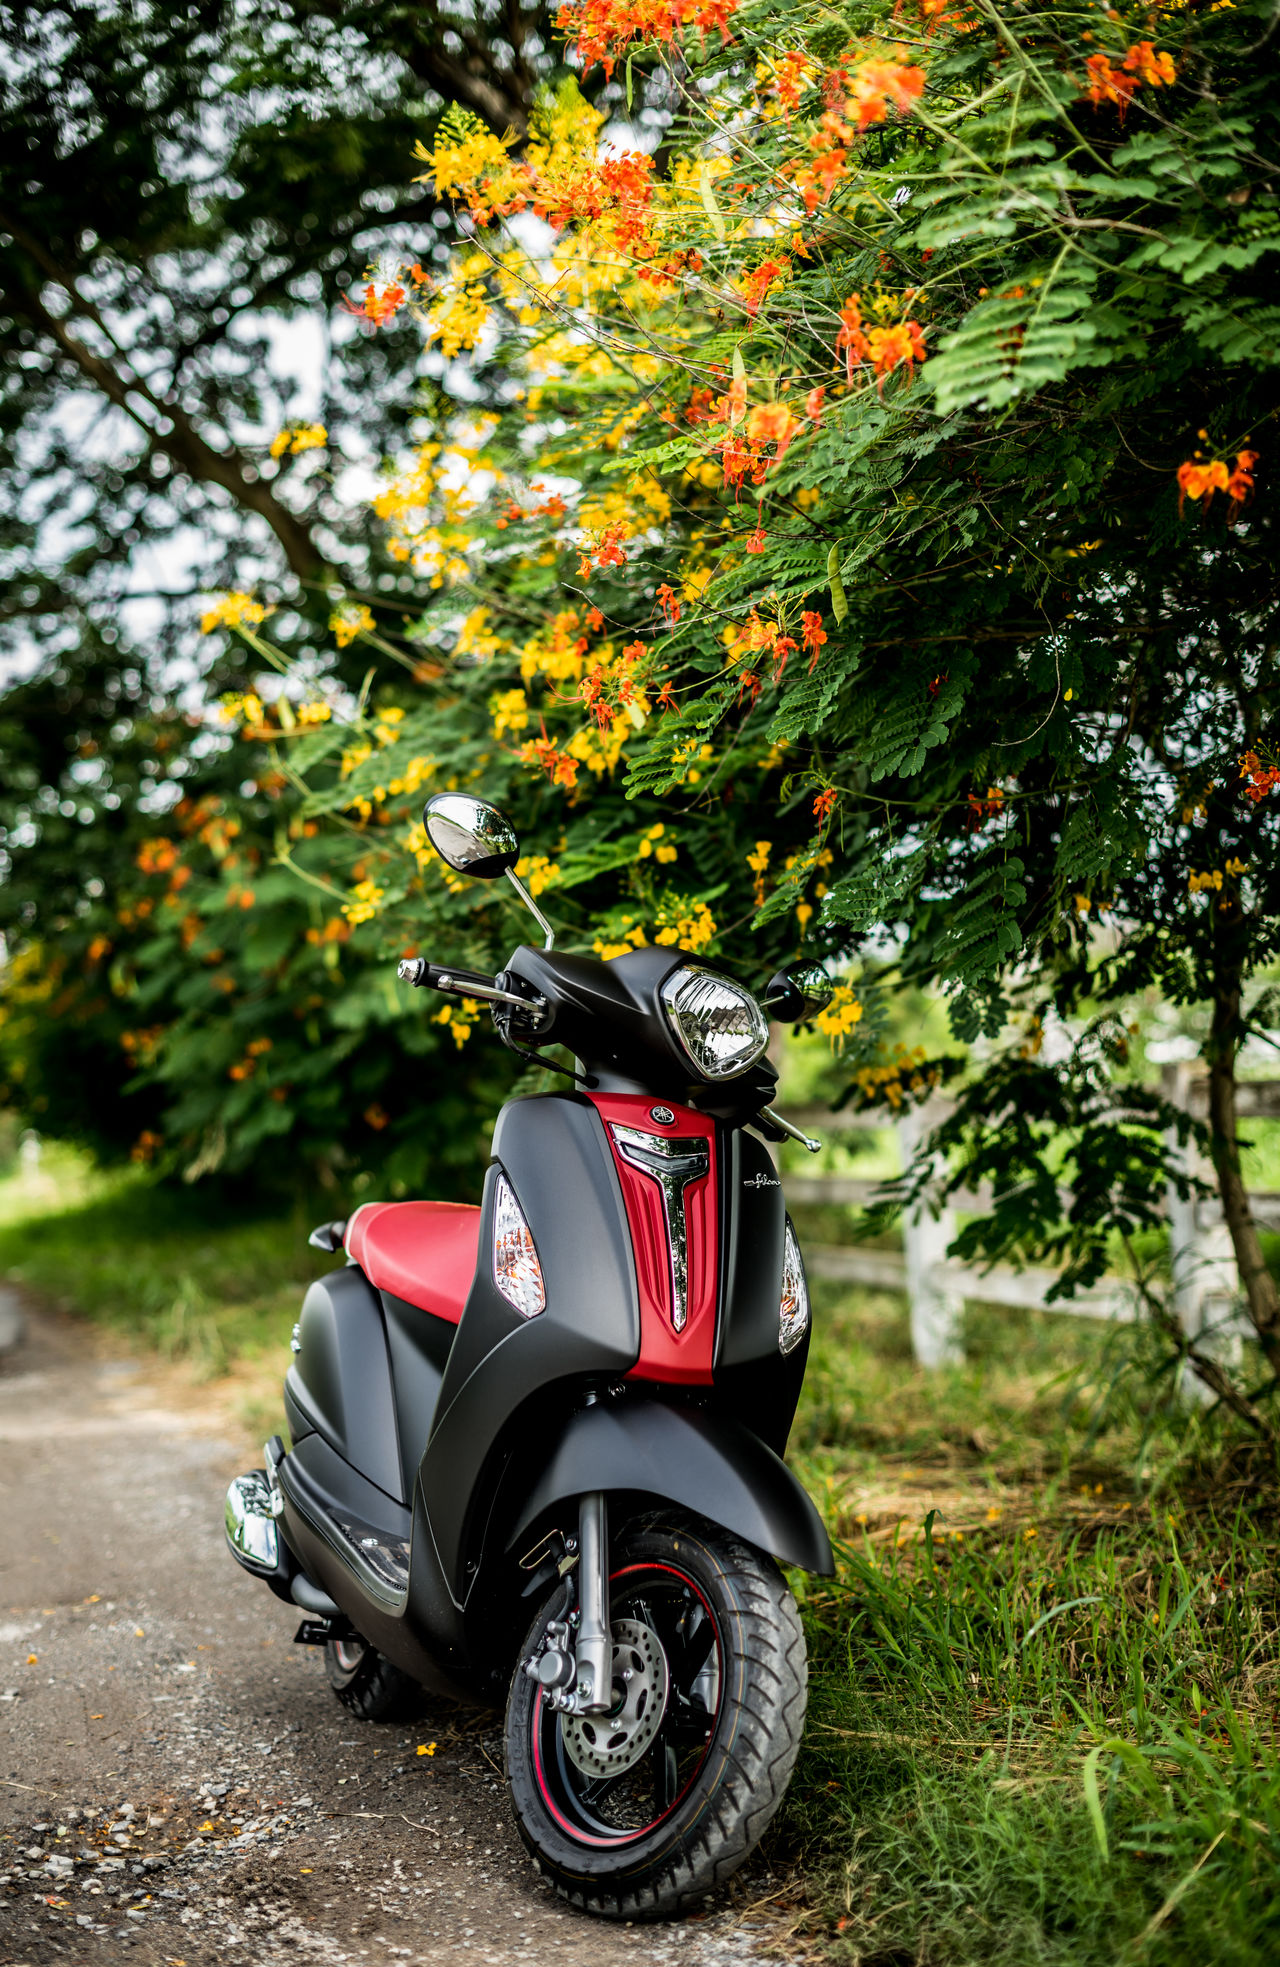 Autumn Beauty In Nature Blooming Blossom Day Flower Forest Grand Filano Motorcycle Nature No People Outdoors Parking Scooter Tree Yamaha